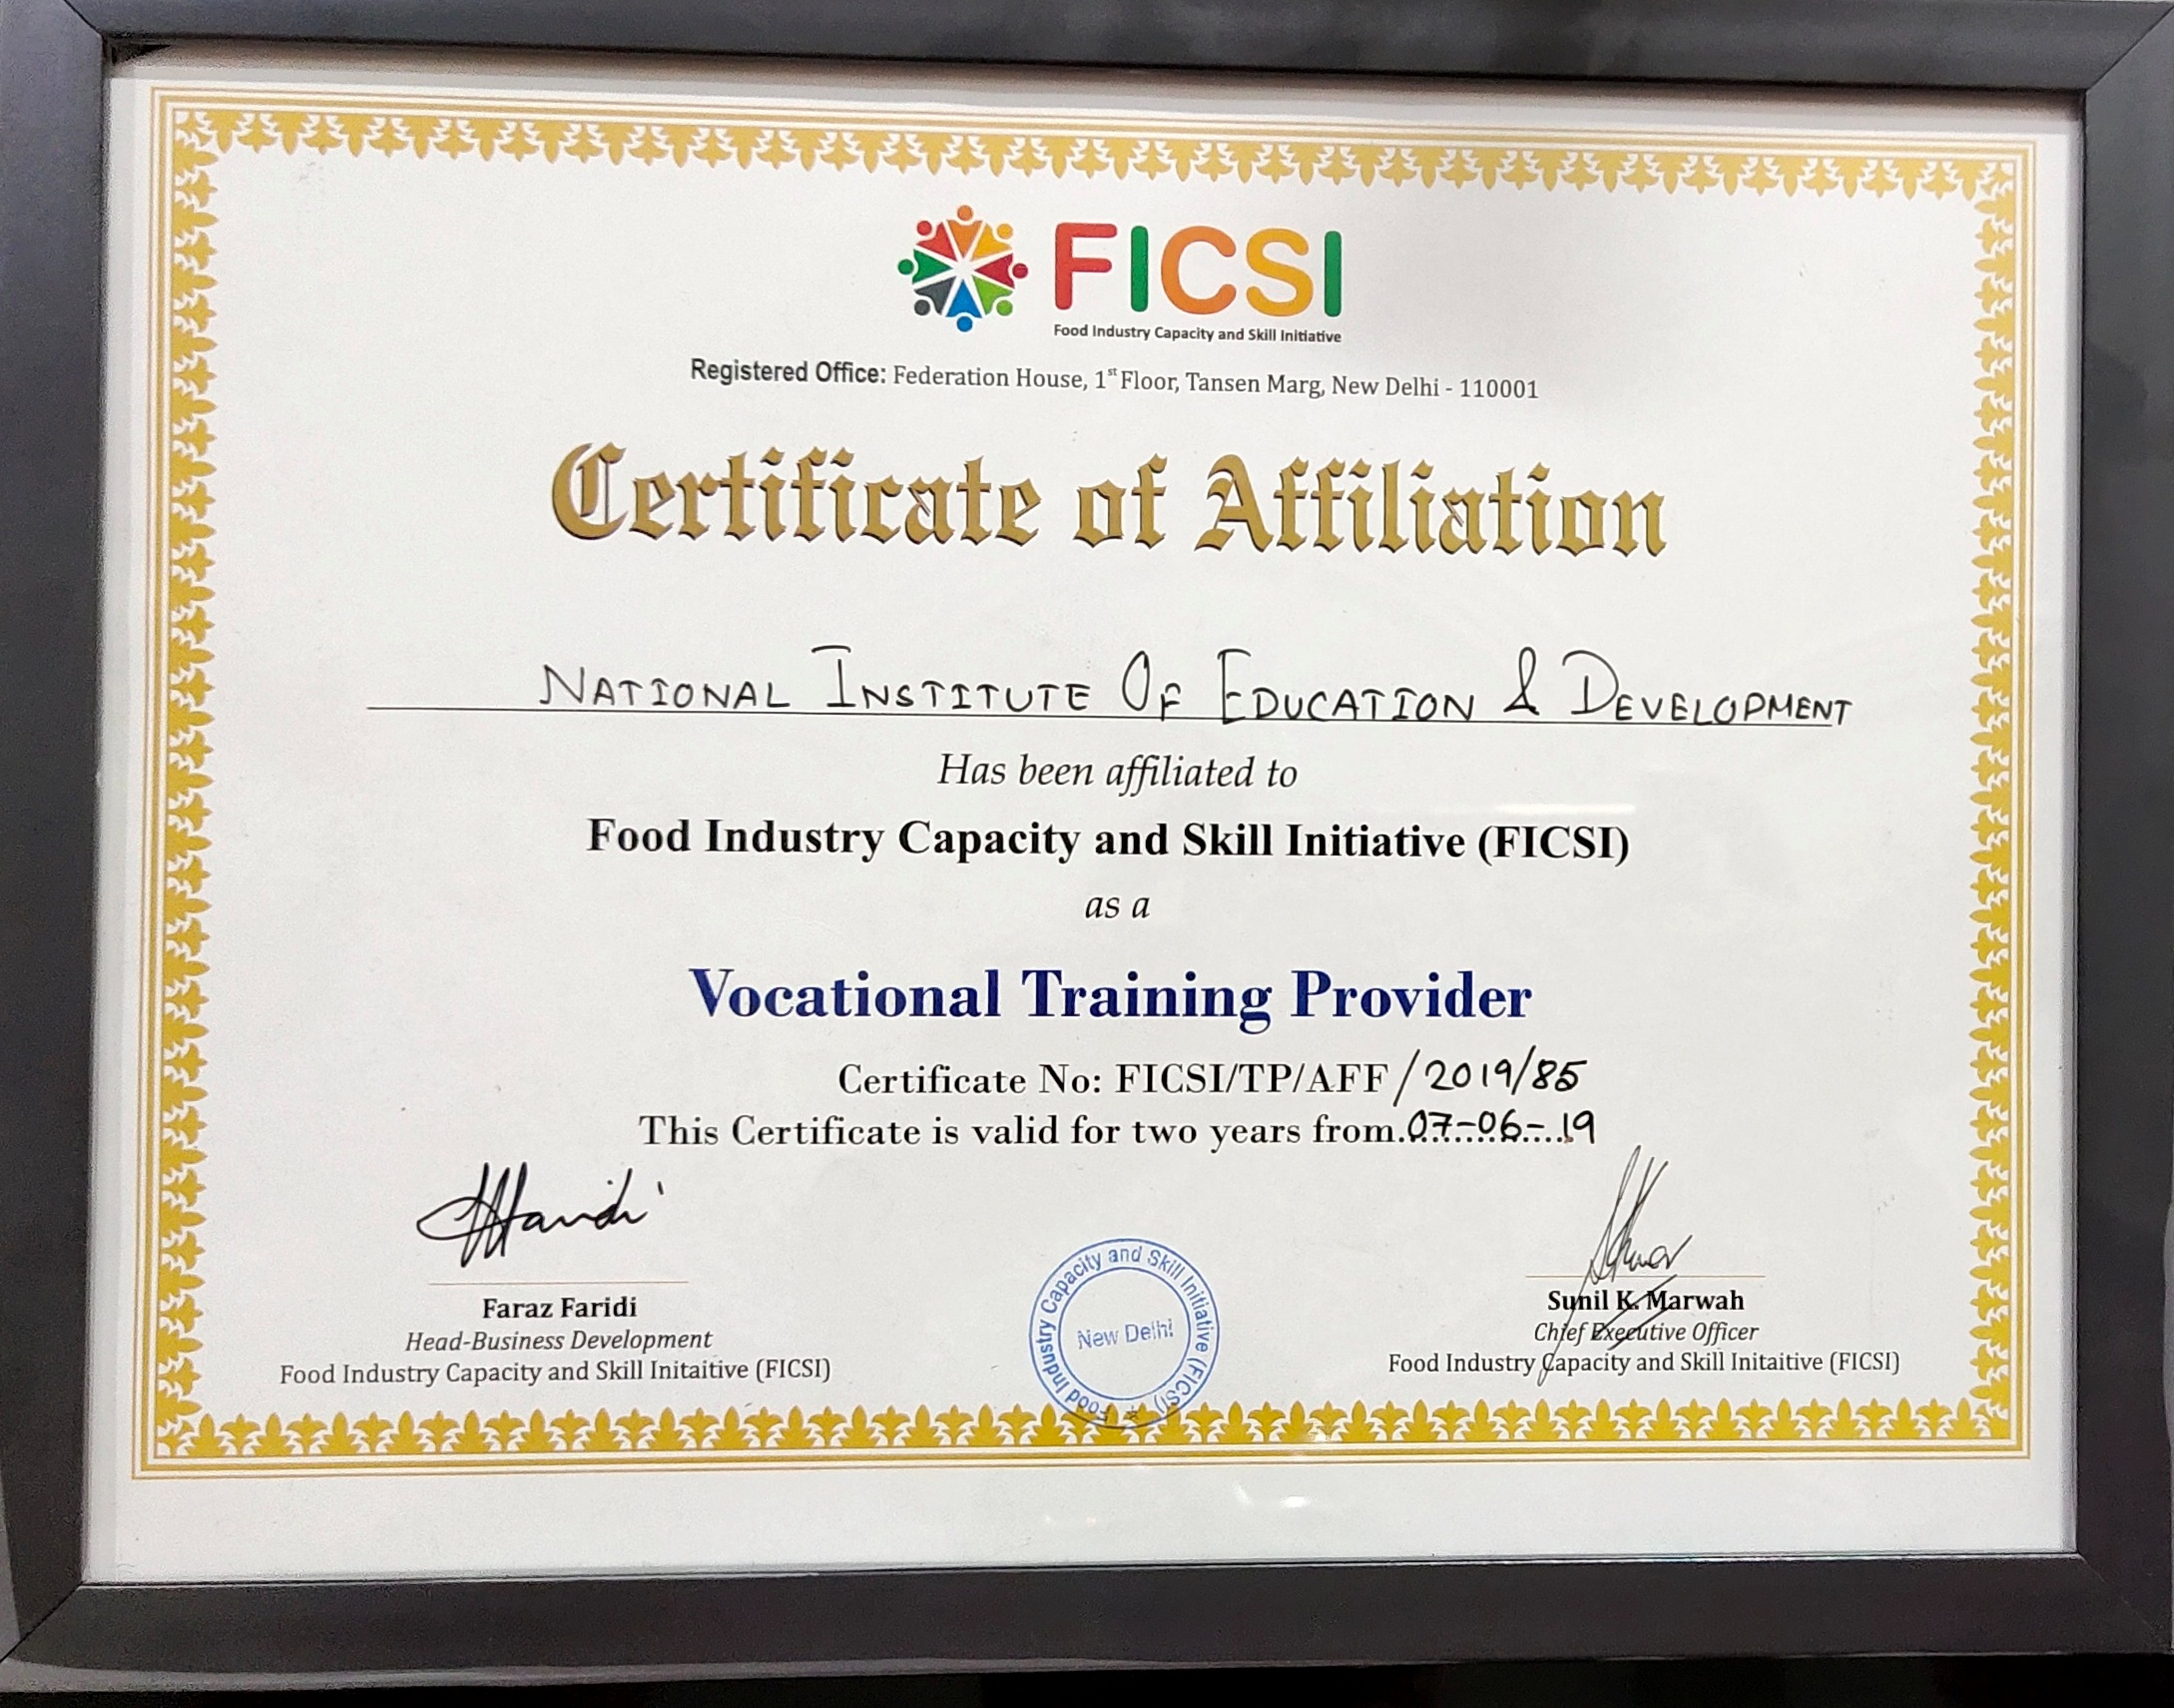 FICSI Certificate of Affiliation